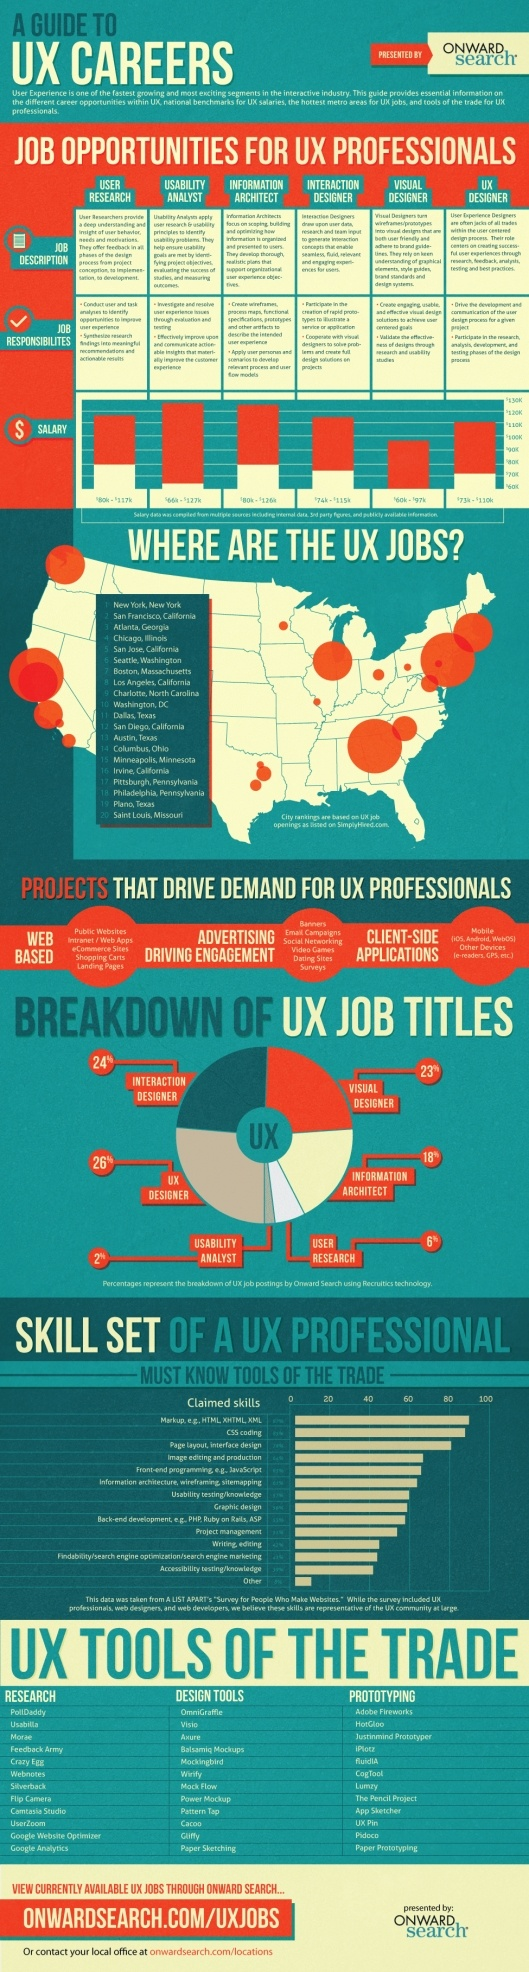 A guide to UX careers.